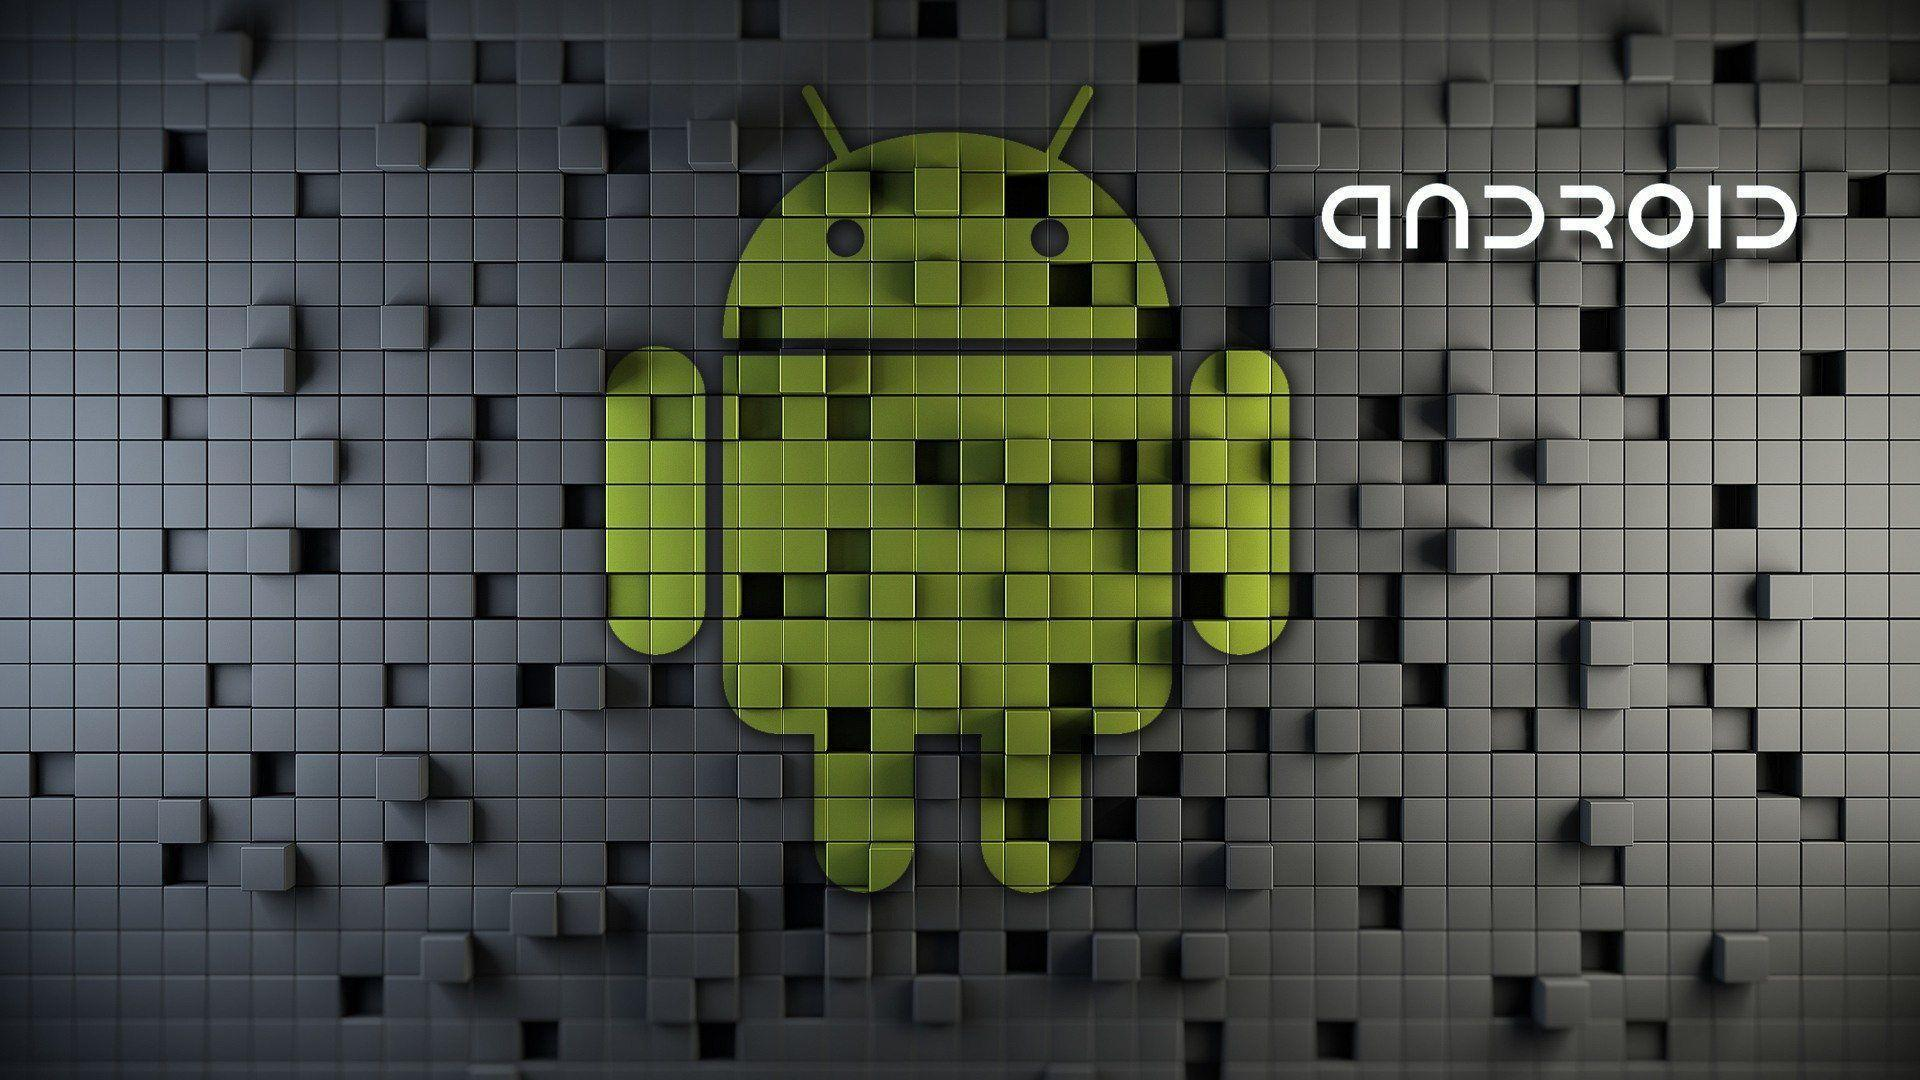 Wallpapers For > Android Logo 3d Wallpaper